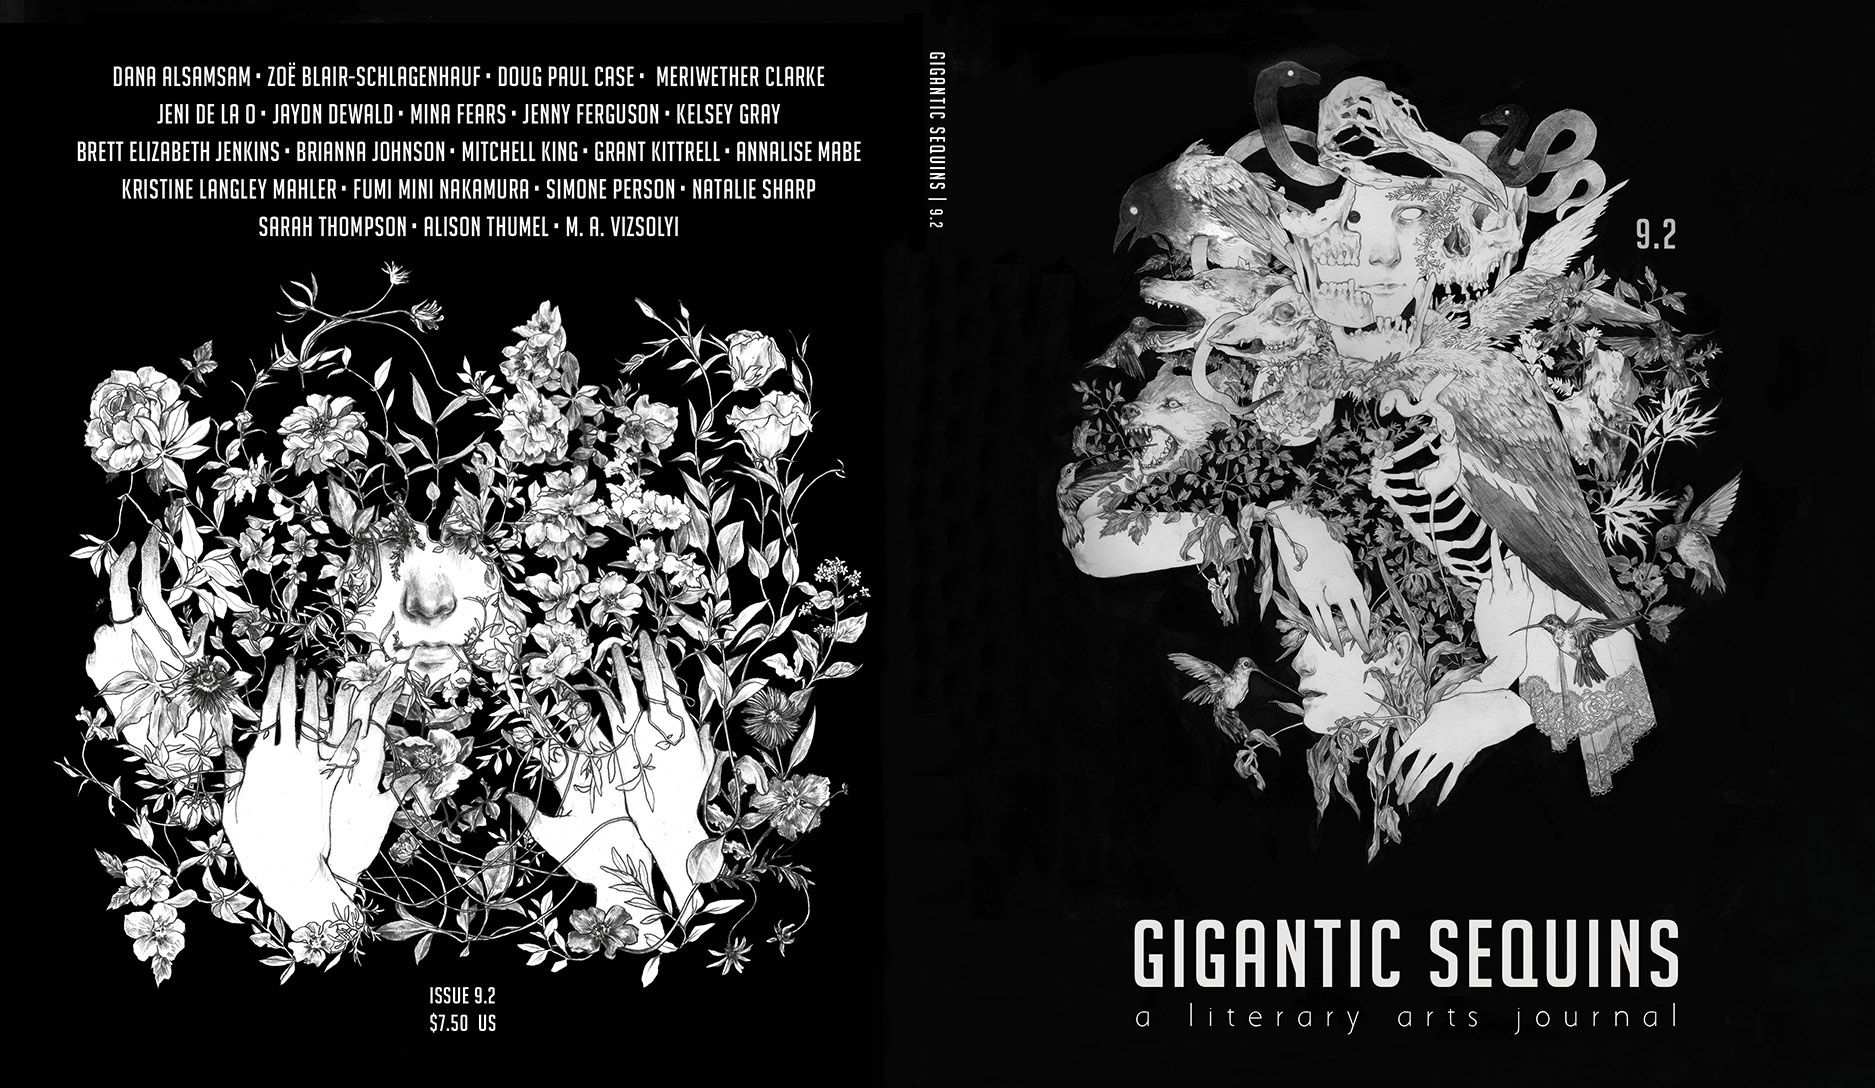 Cover design + interior layout for   Gigantic Sequins: A Literary Arts Journal , Issue 9.2  (July 2018).